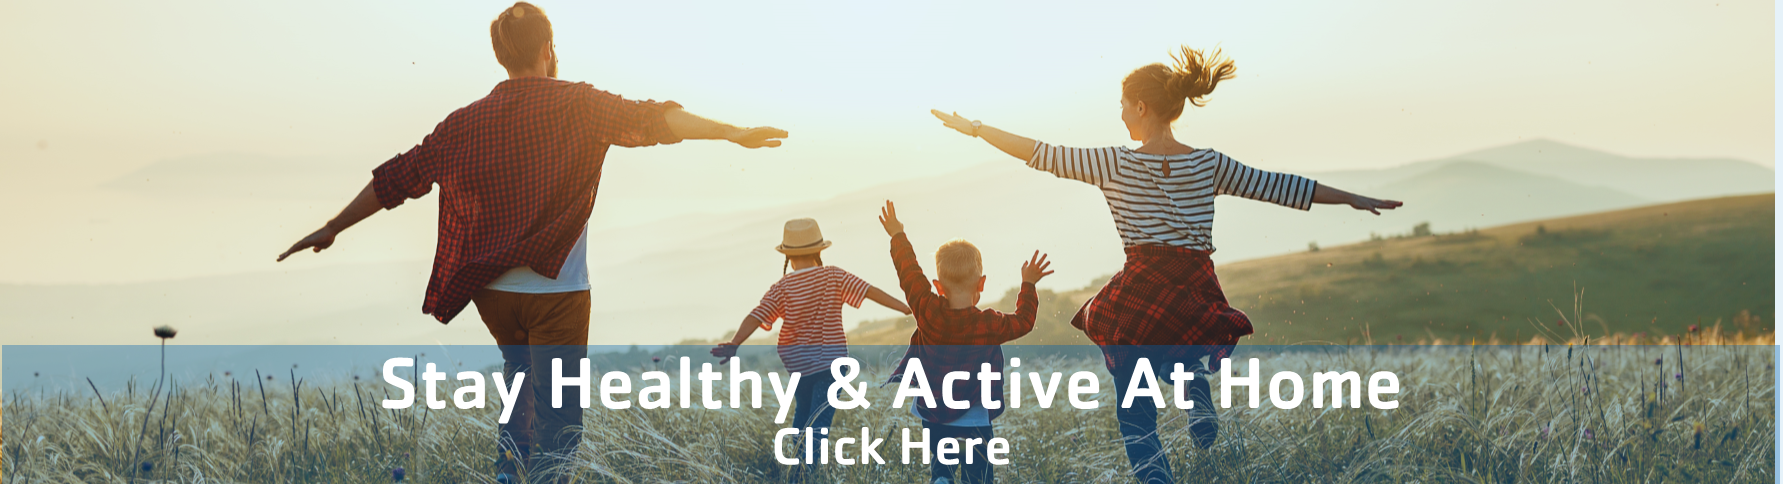 Healthy at Home Homepage Banner